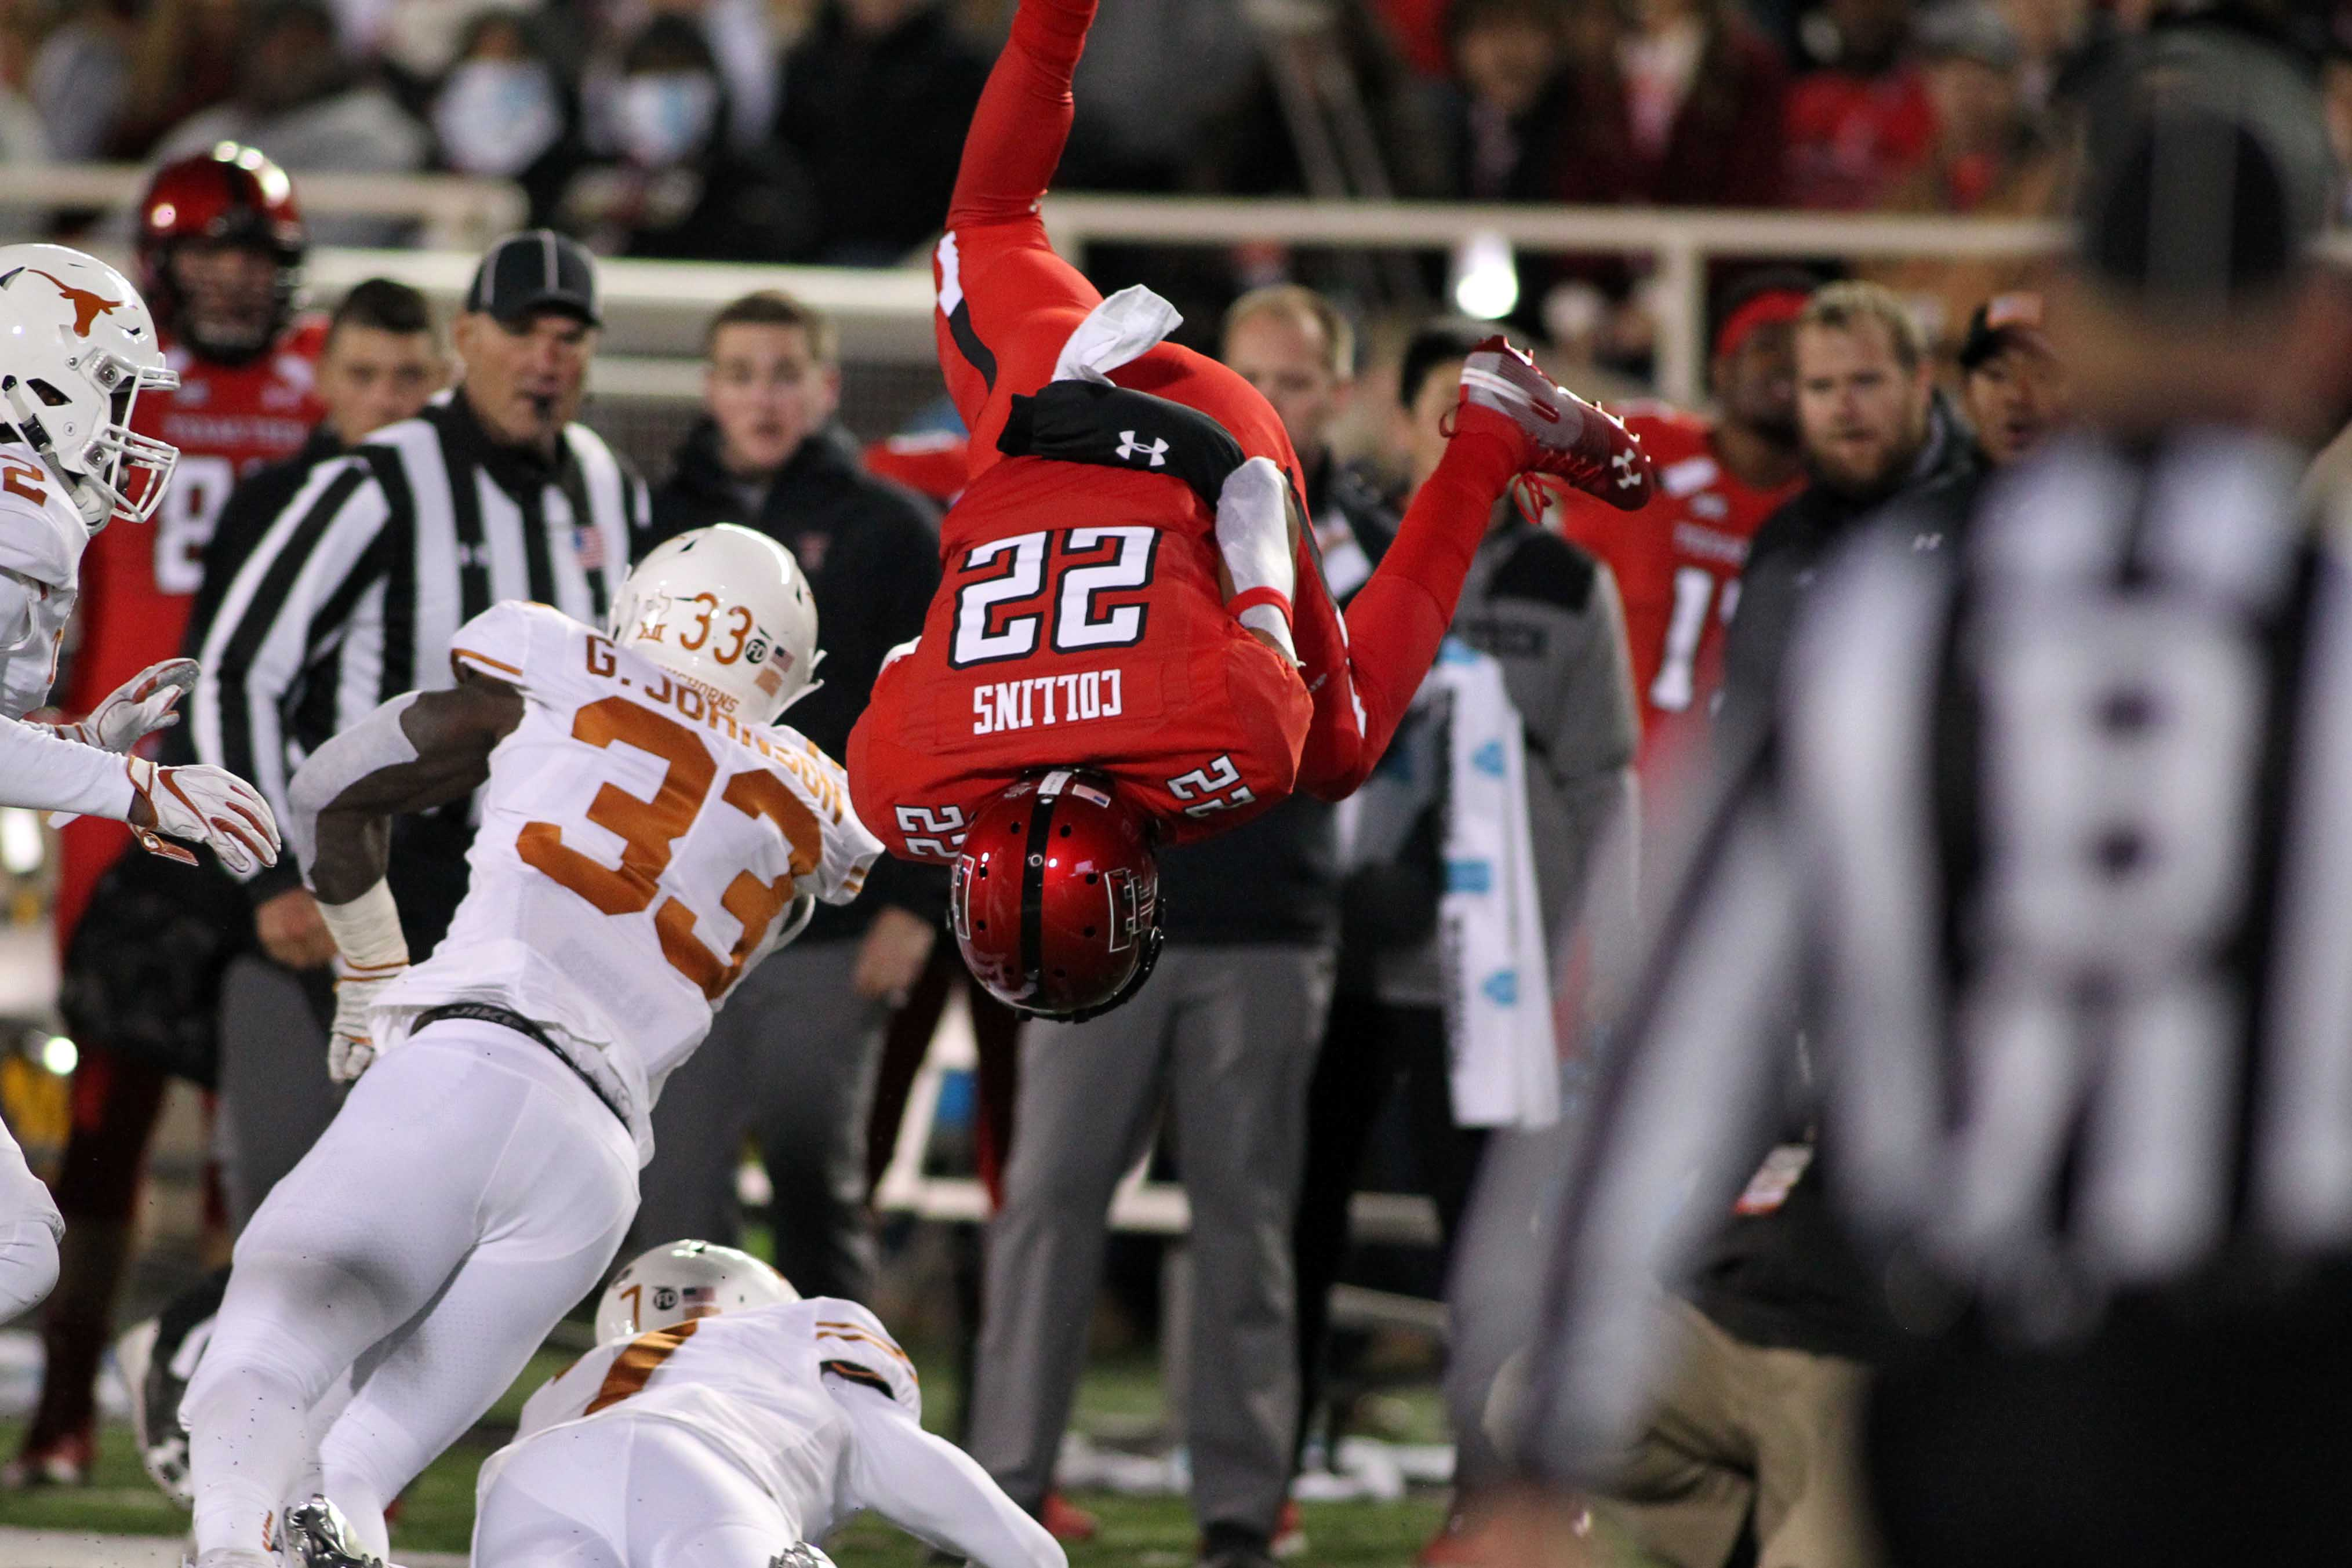 How To Watch Texas Tech Baylor Football What Is The Game Time Tv Channel Live Feed Online